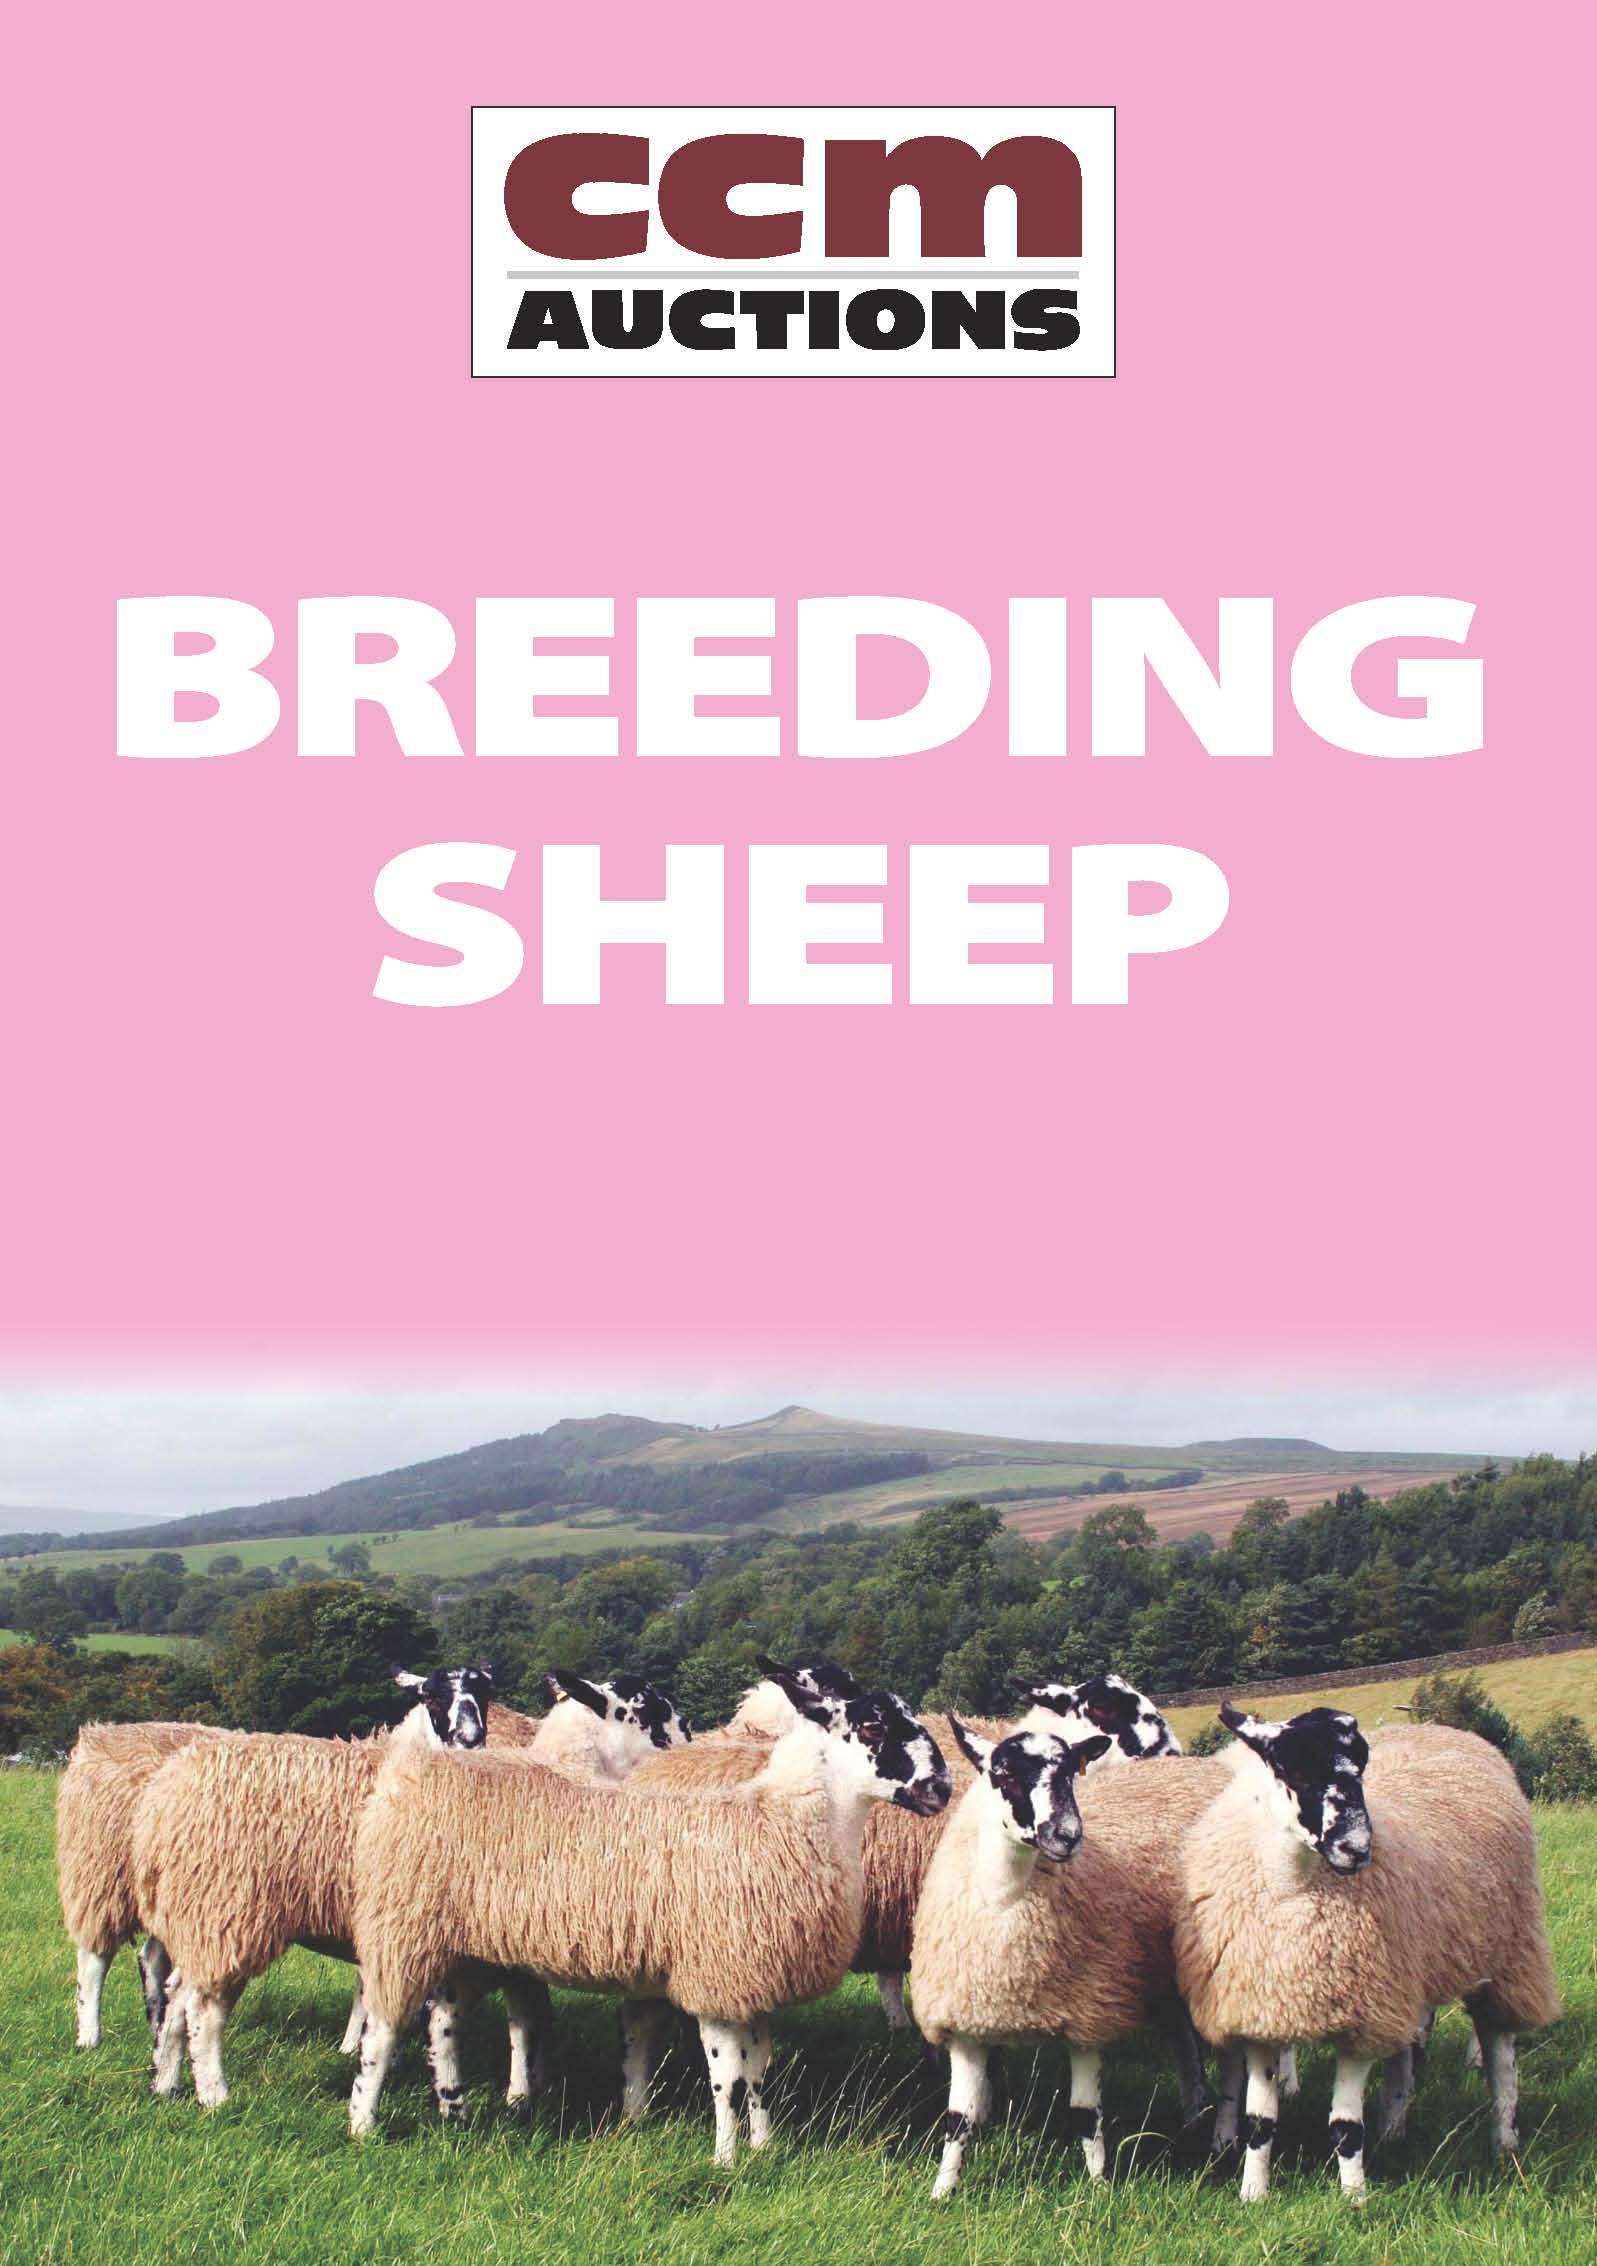 DALESBRED RAMS - TUESDAY 21ST OCTOBER 2014 PRESS